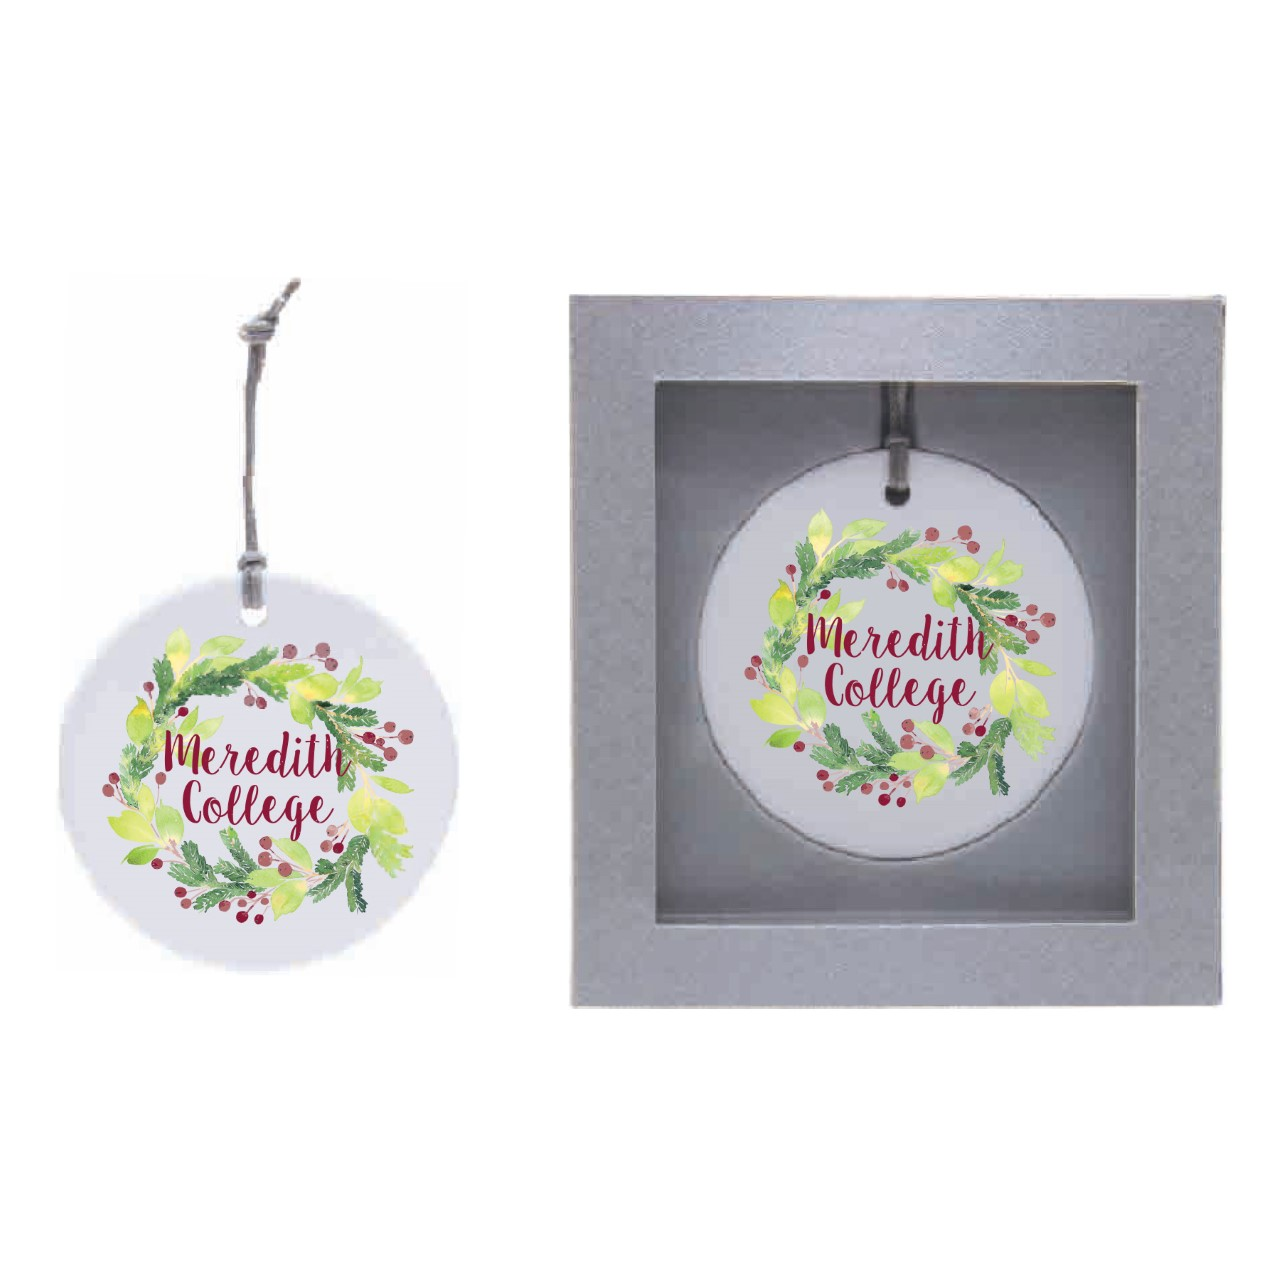 Image for the Ceramic Circle Ornament, Wreath with Meredith College product